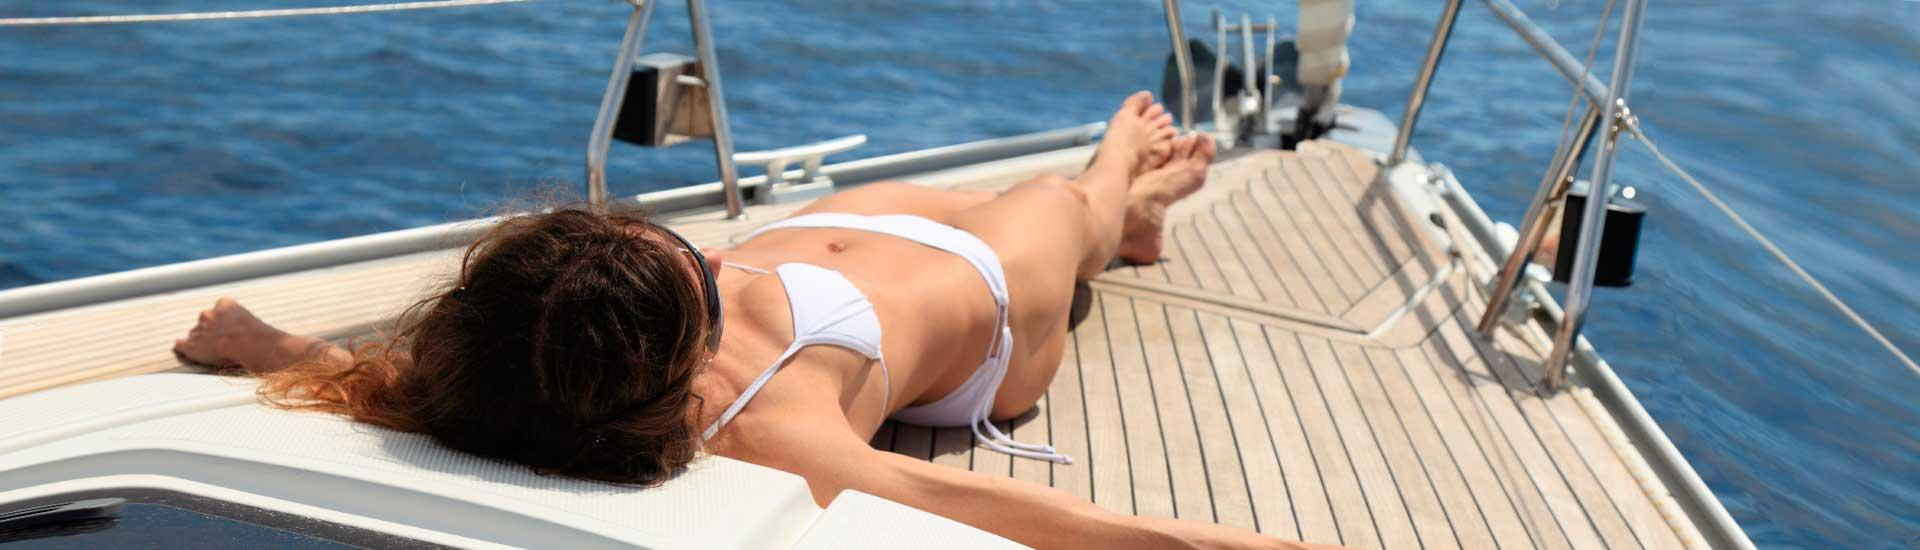 Relax and enjoy sailing